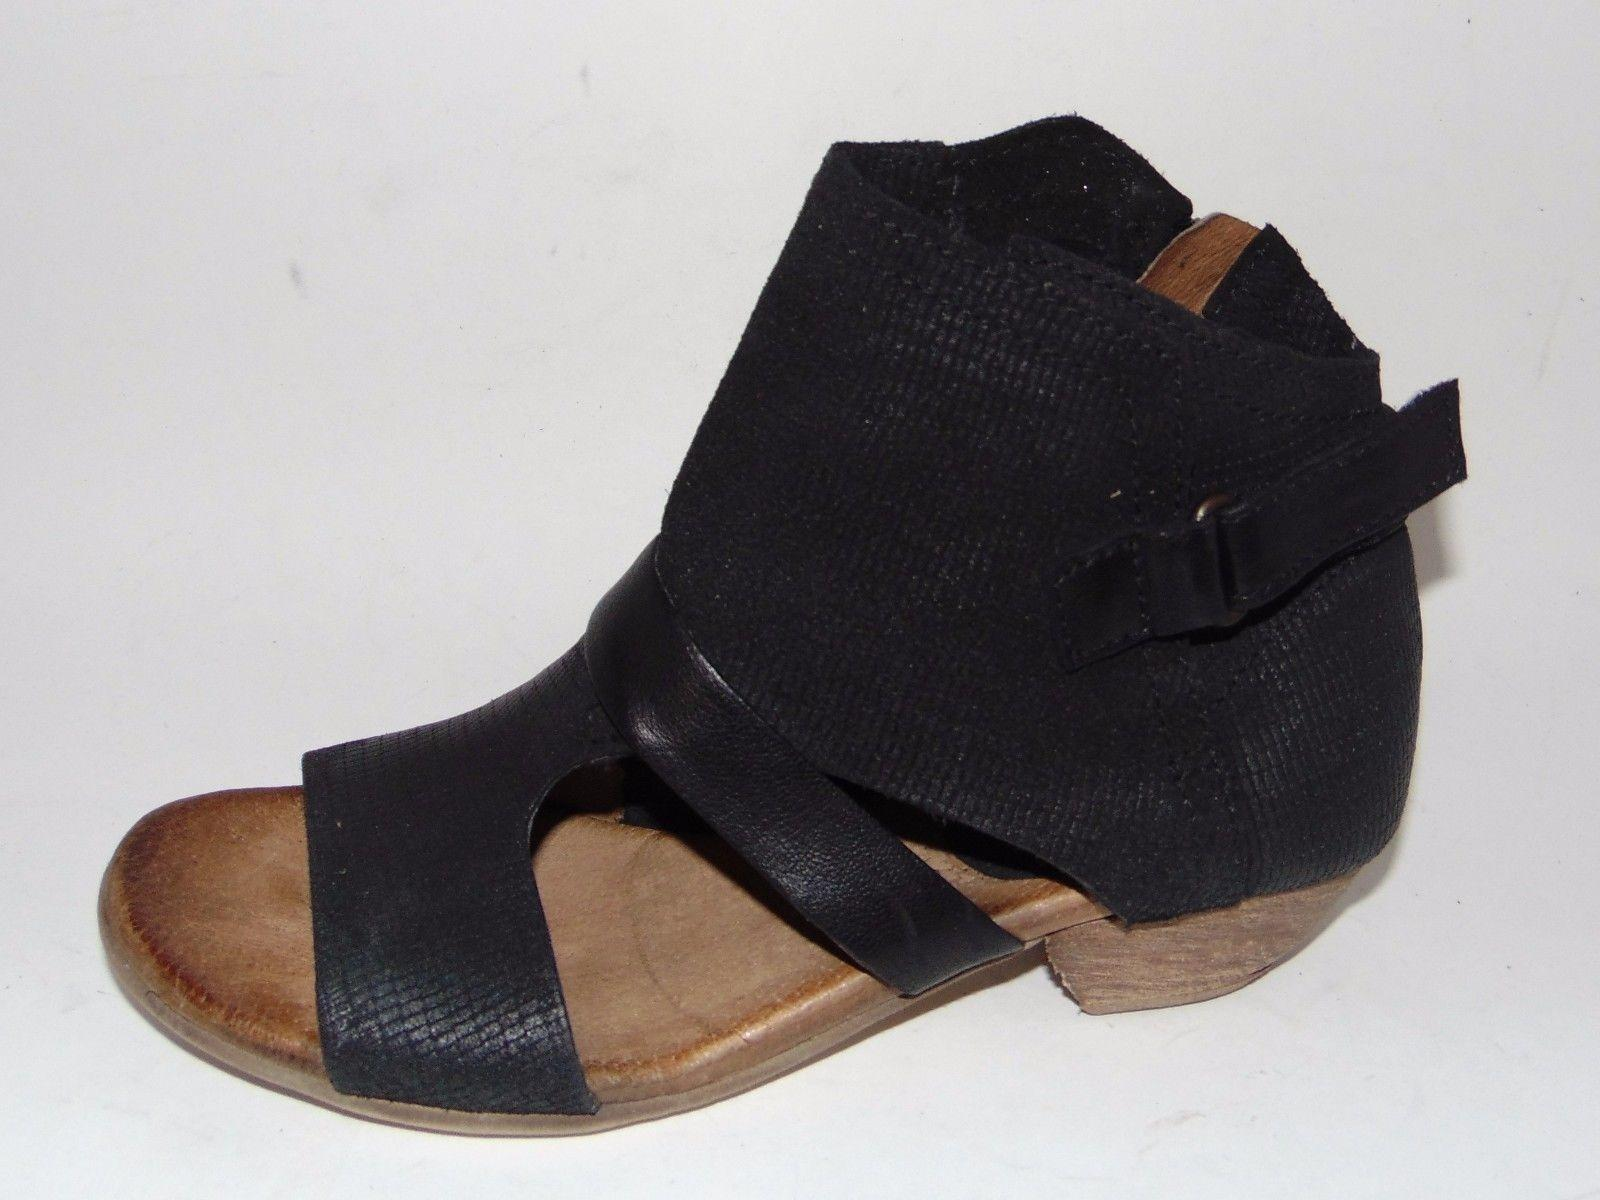 Miz Sandals Mooz Black Leather Bootie 37 Corgan Sandals Miz Size US 6.5 Regular (M, B) 051053